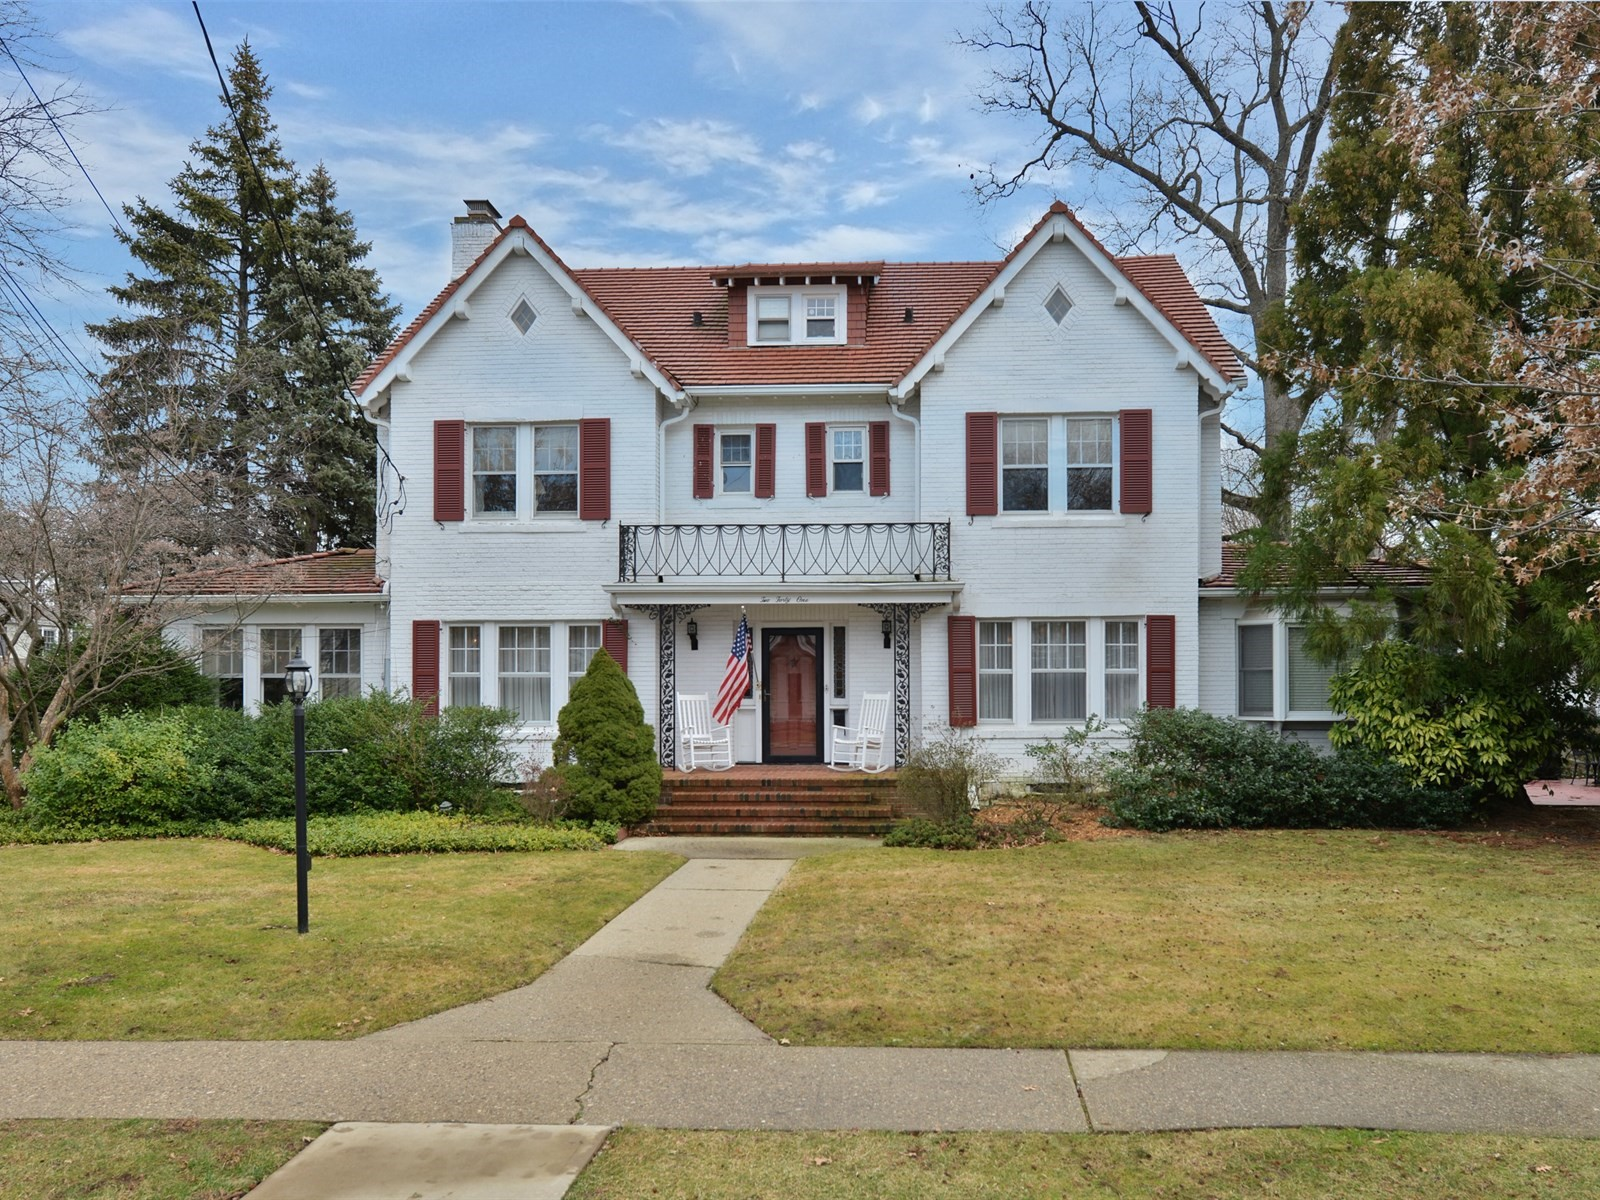 Maison unifamiliale pour l Vente à Colonial 241 Harvard Ave Rockville Centre, New York 11570 États-Unis